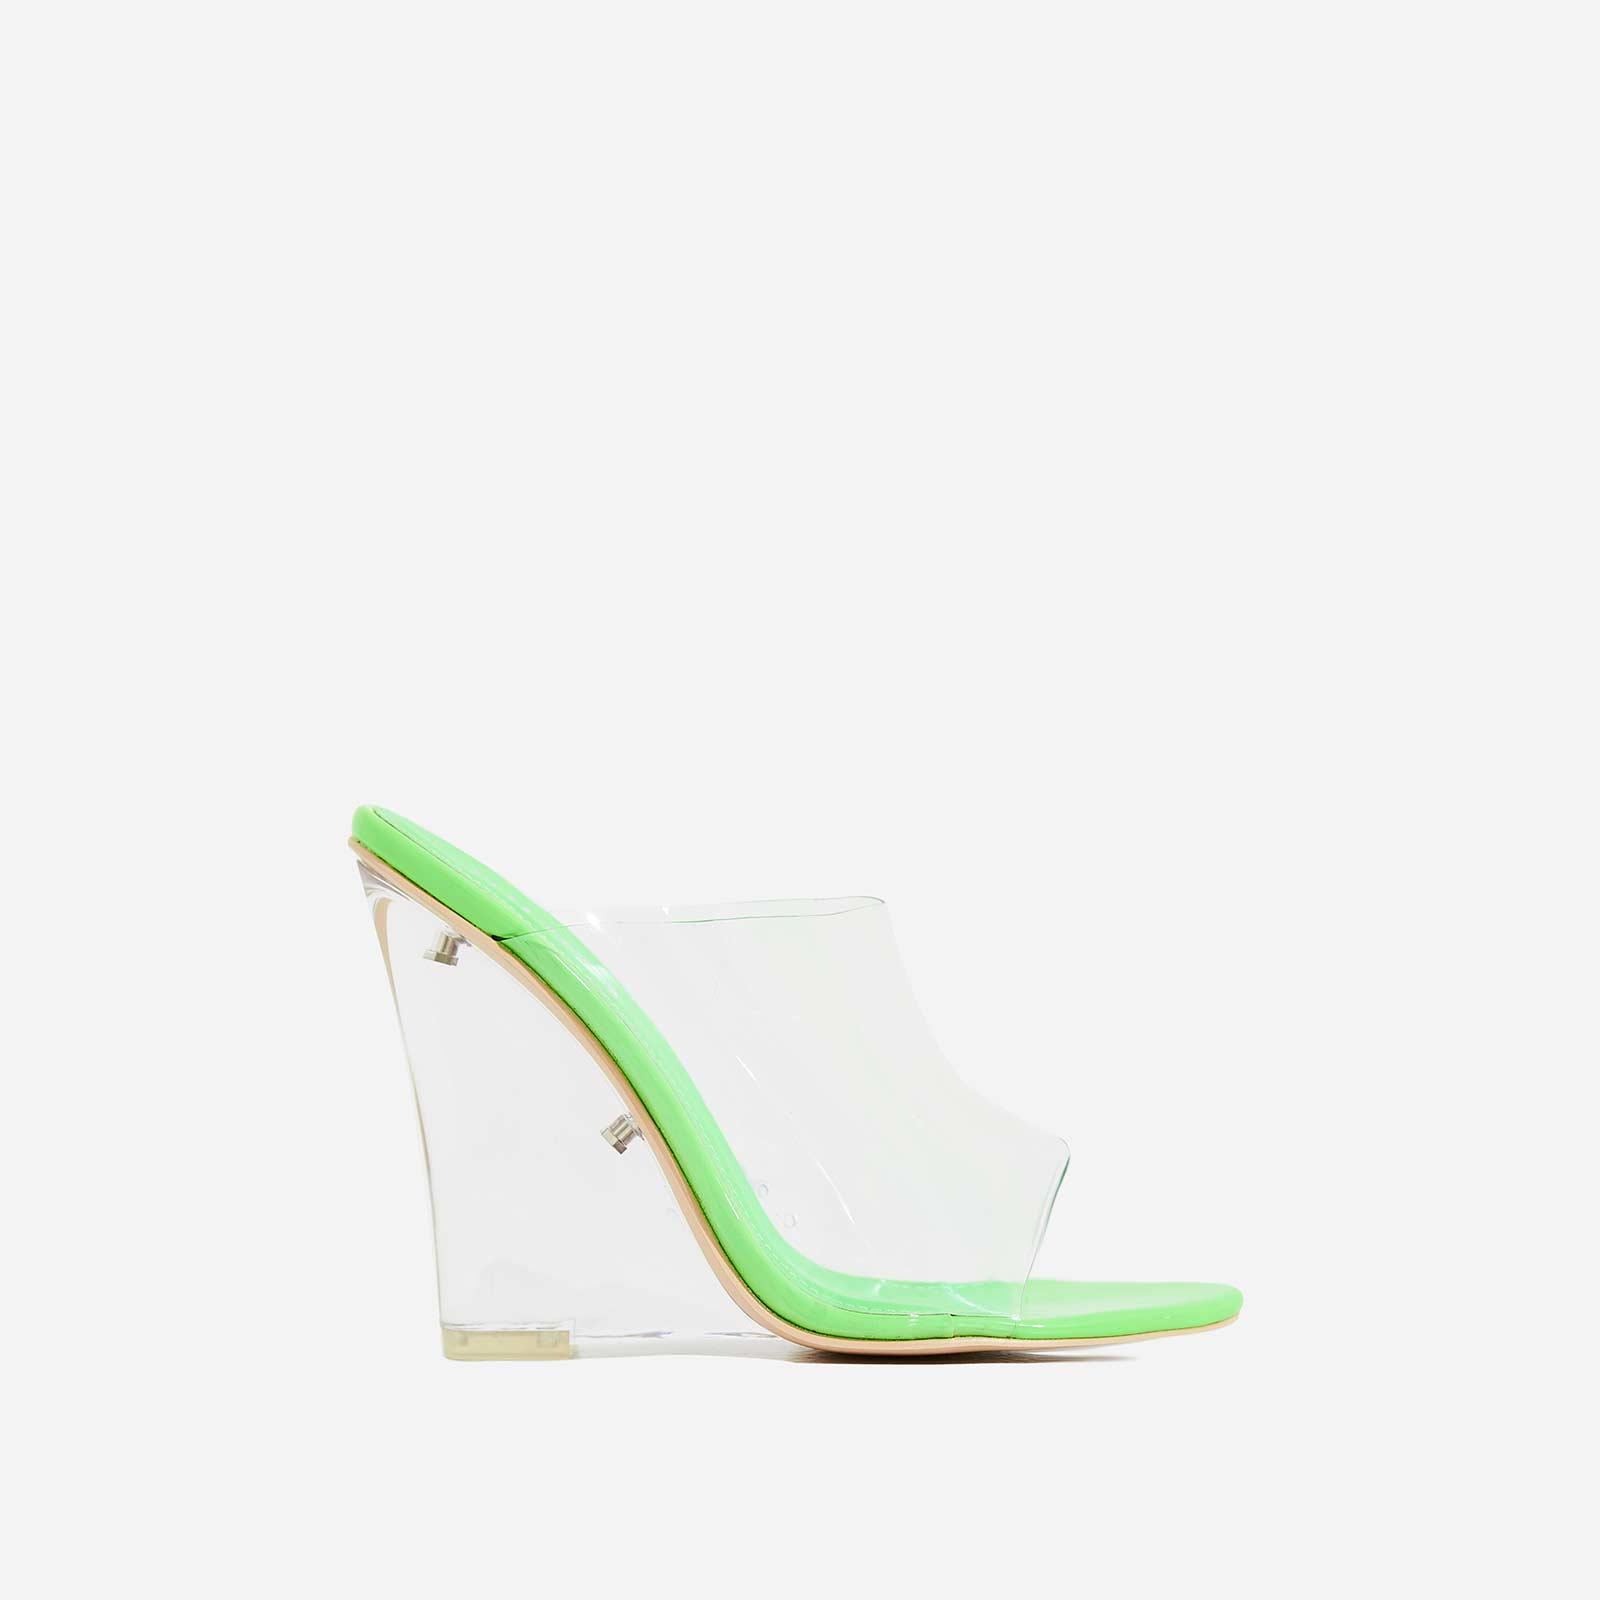 Lemonade Perspex Wedge Peep Toe Mule In Lime Green Patent